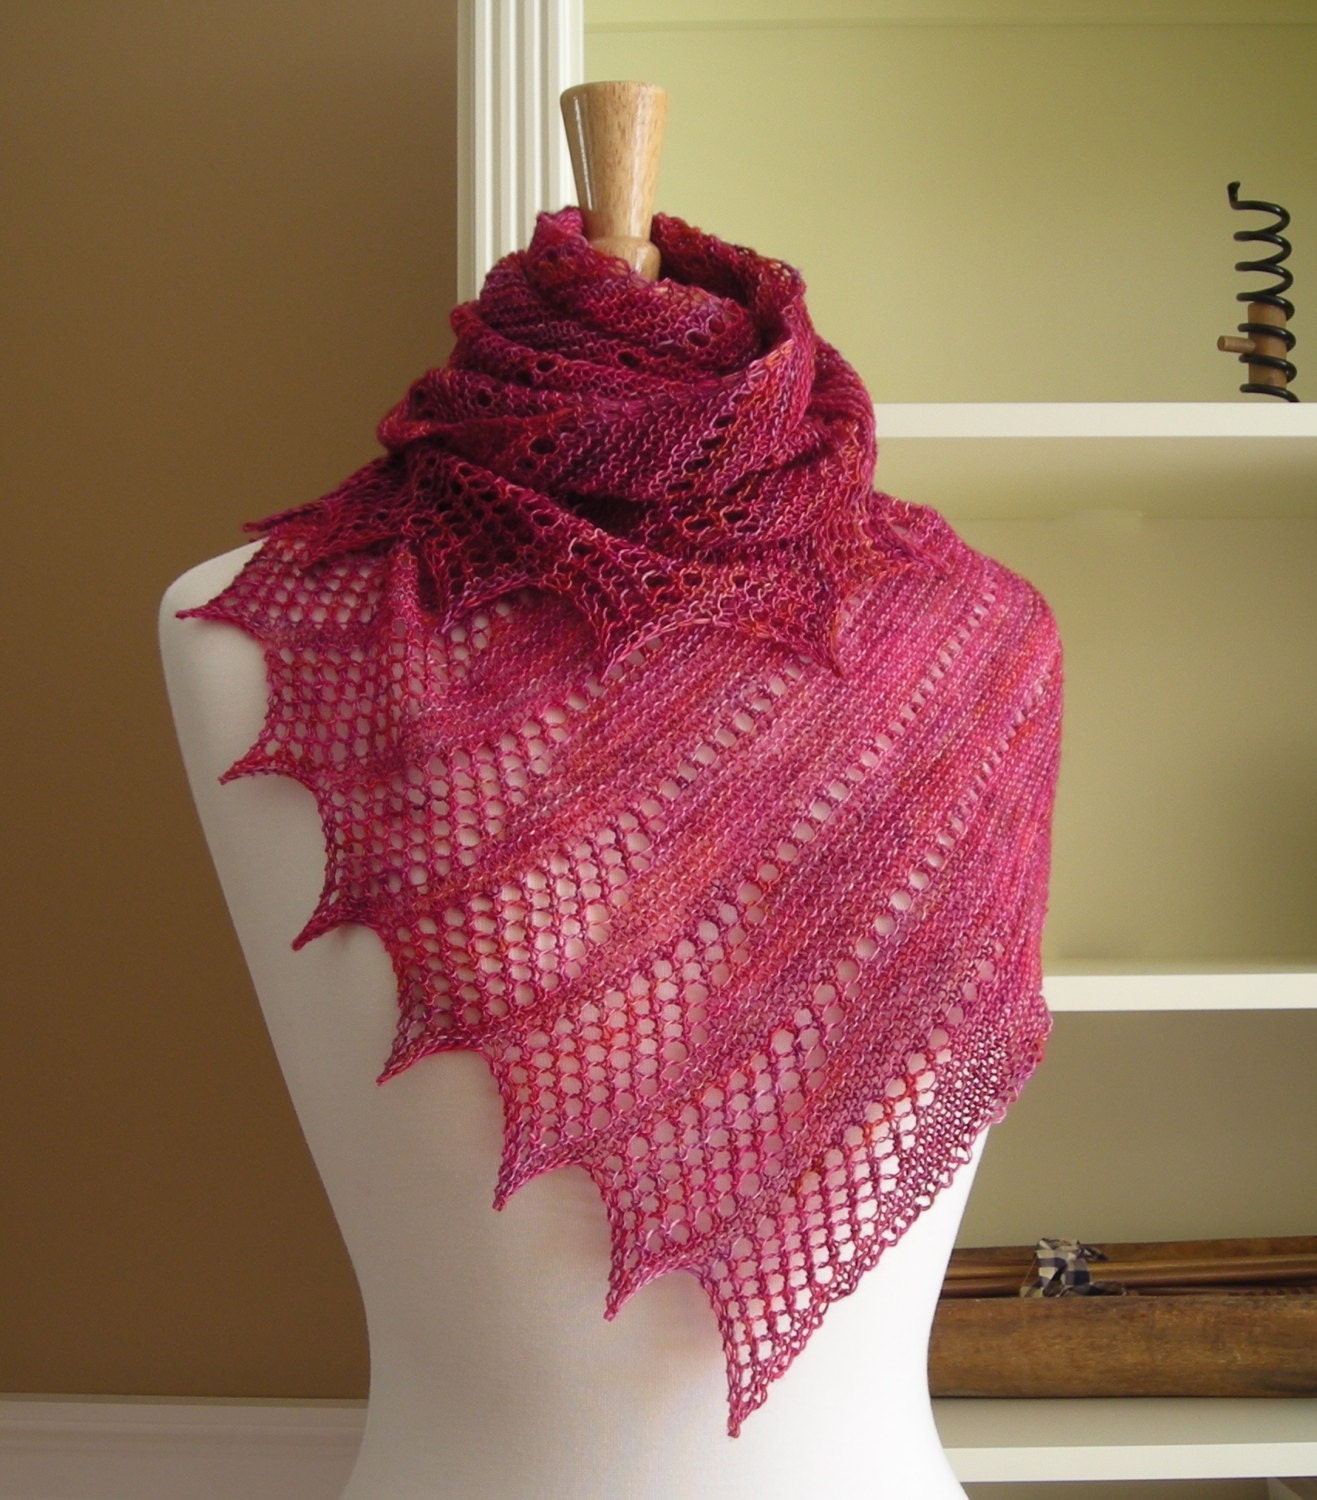 Lace shawl knitting pattern pdf mistral shawl asymetric this is a digital file bankloansurffo Image collections